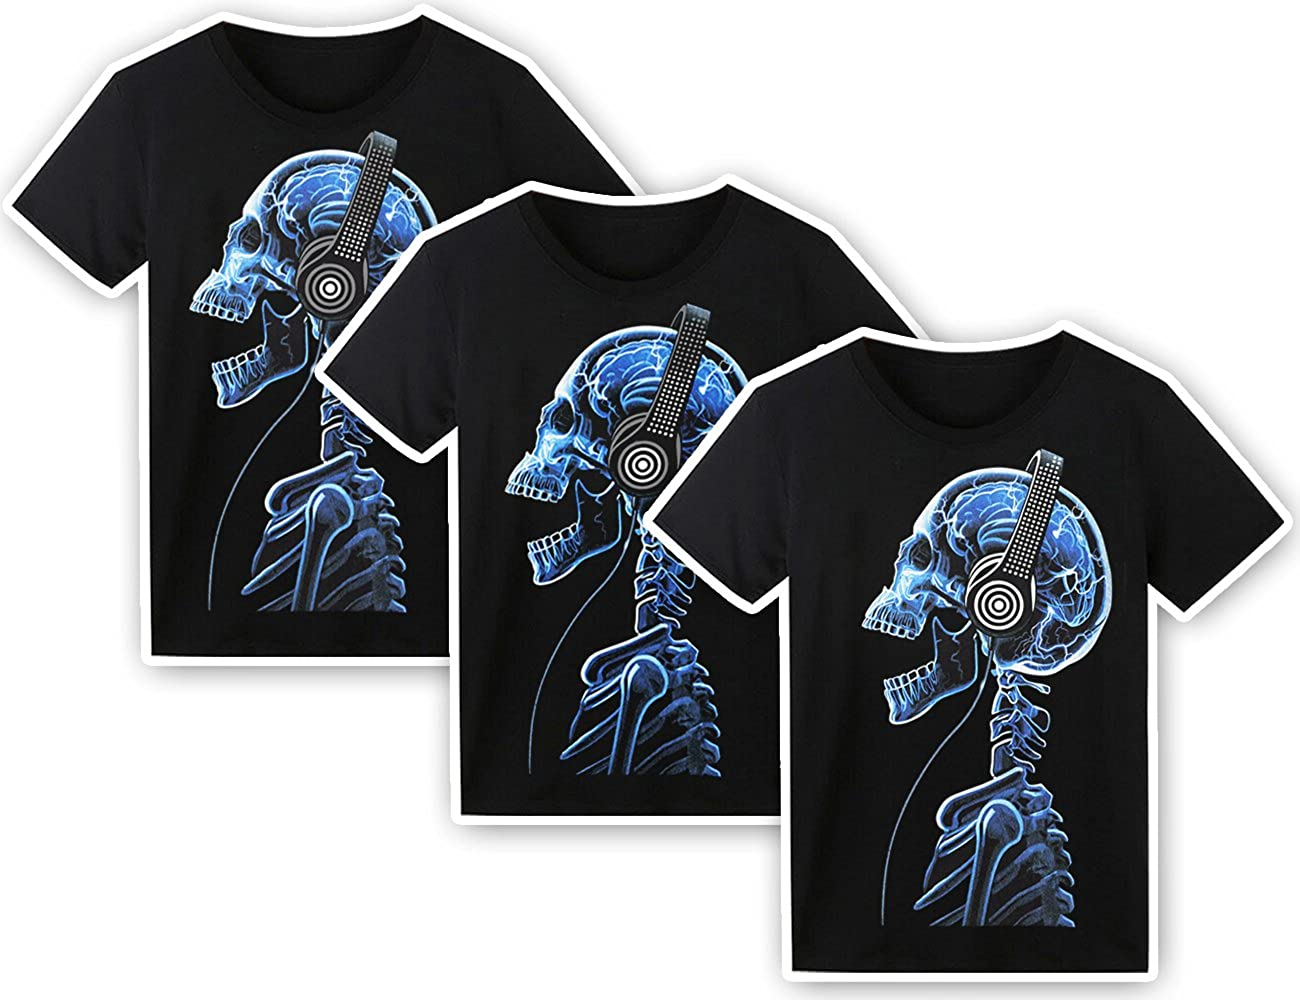 54f8b407 Amazon.com: LED T Shirt Sound Activated Glow Shirts Light up Equalizer  Clothes for Party: Clothing